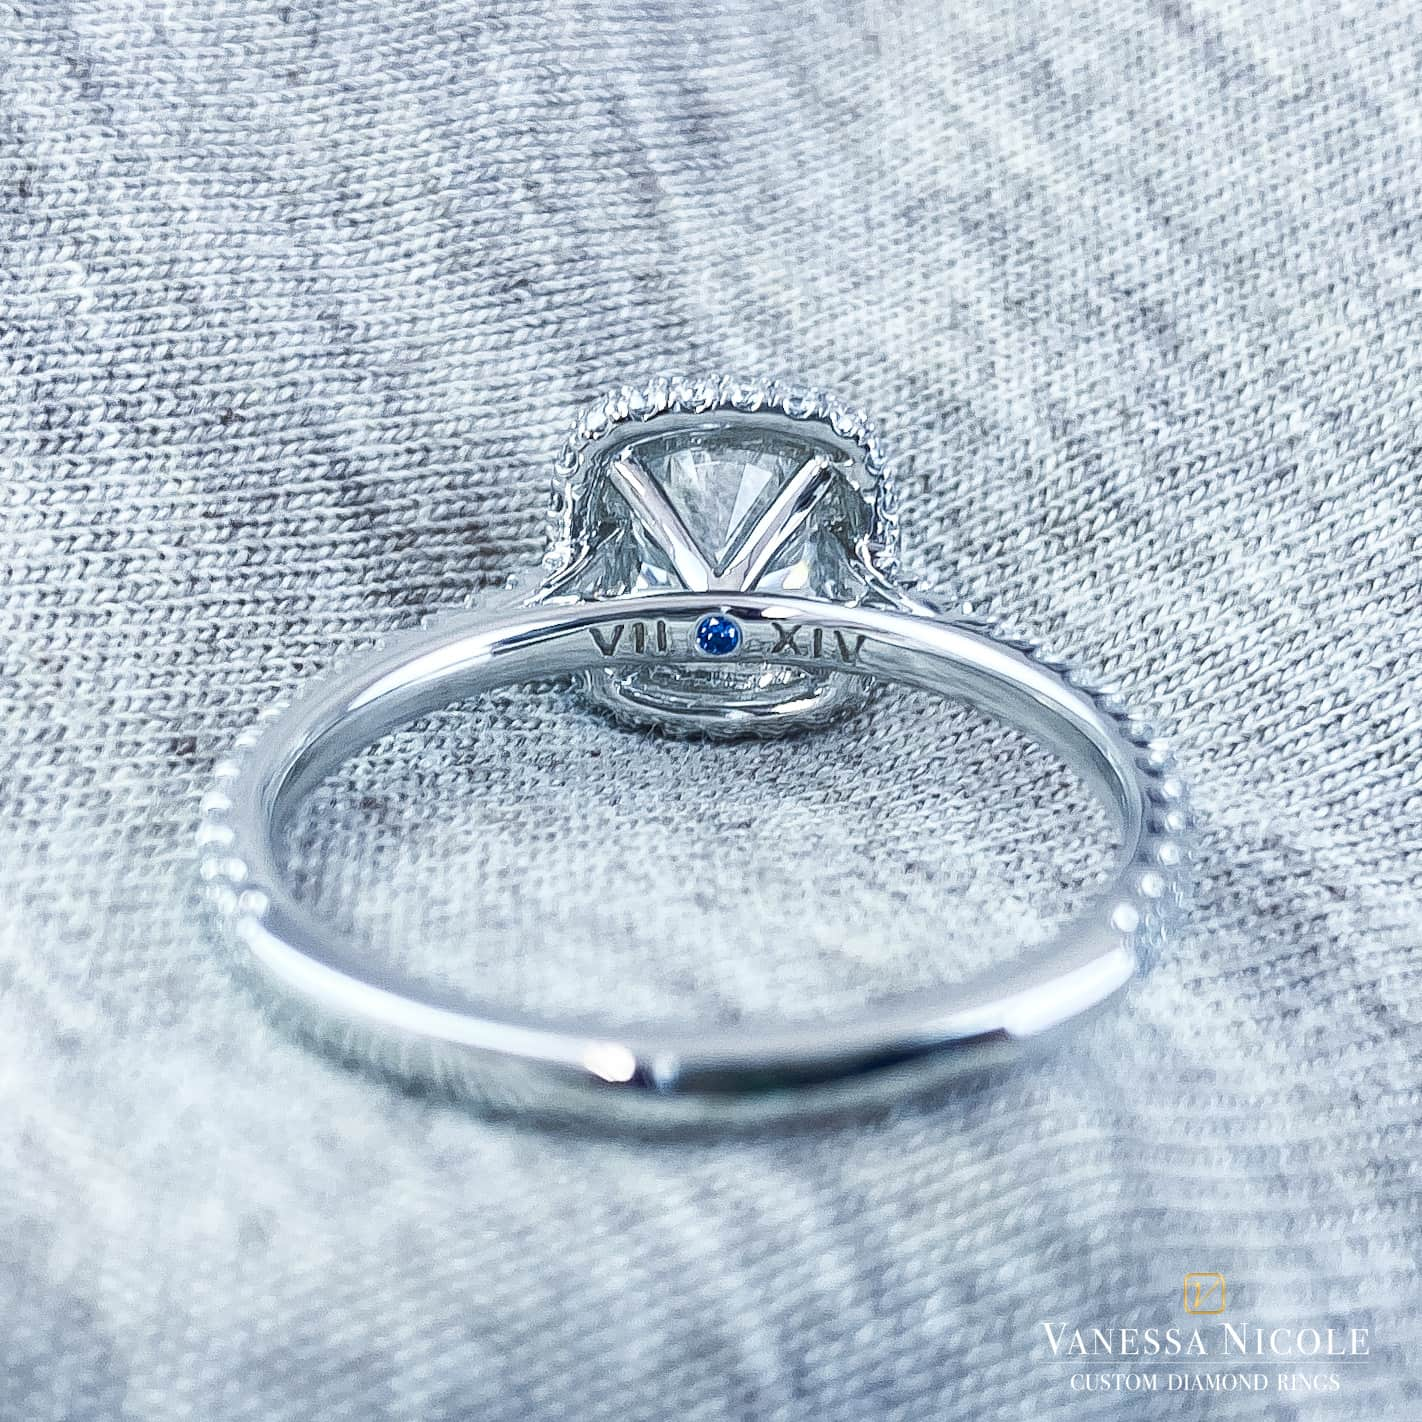 back view of cushion cut diamond in platinum micro pave halo setting